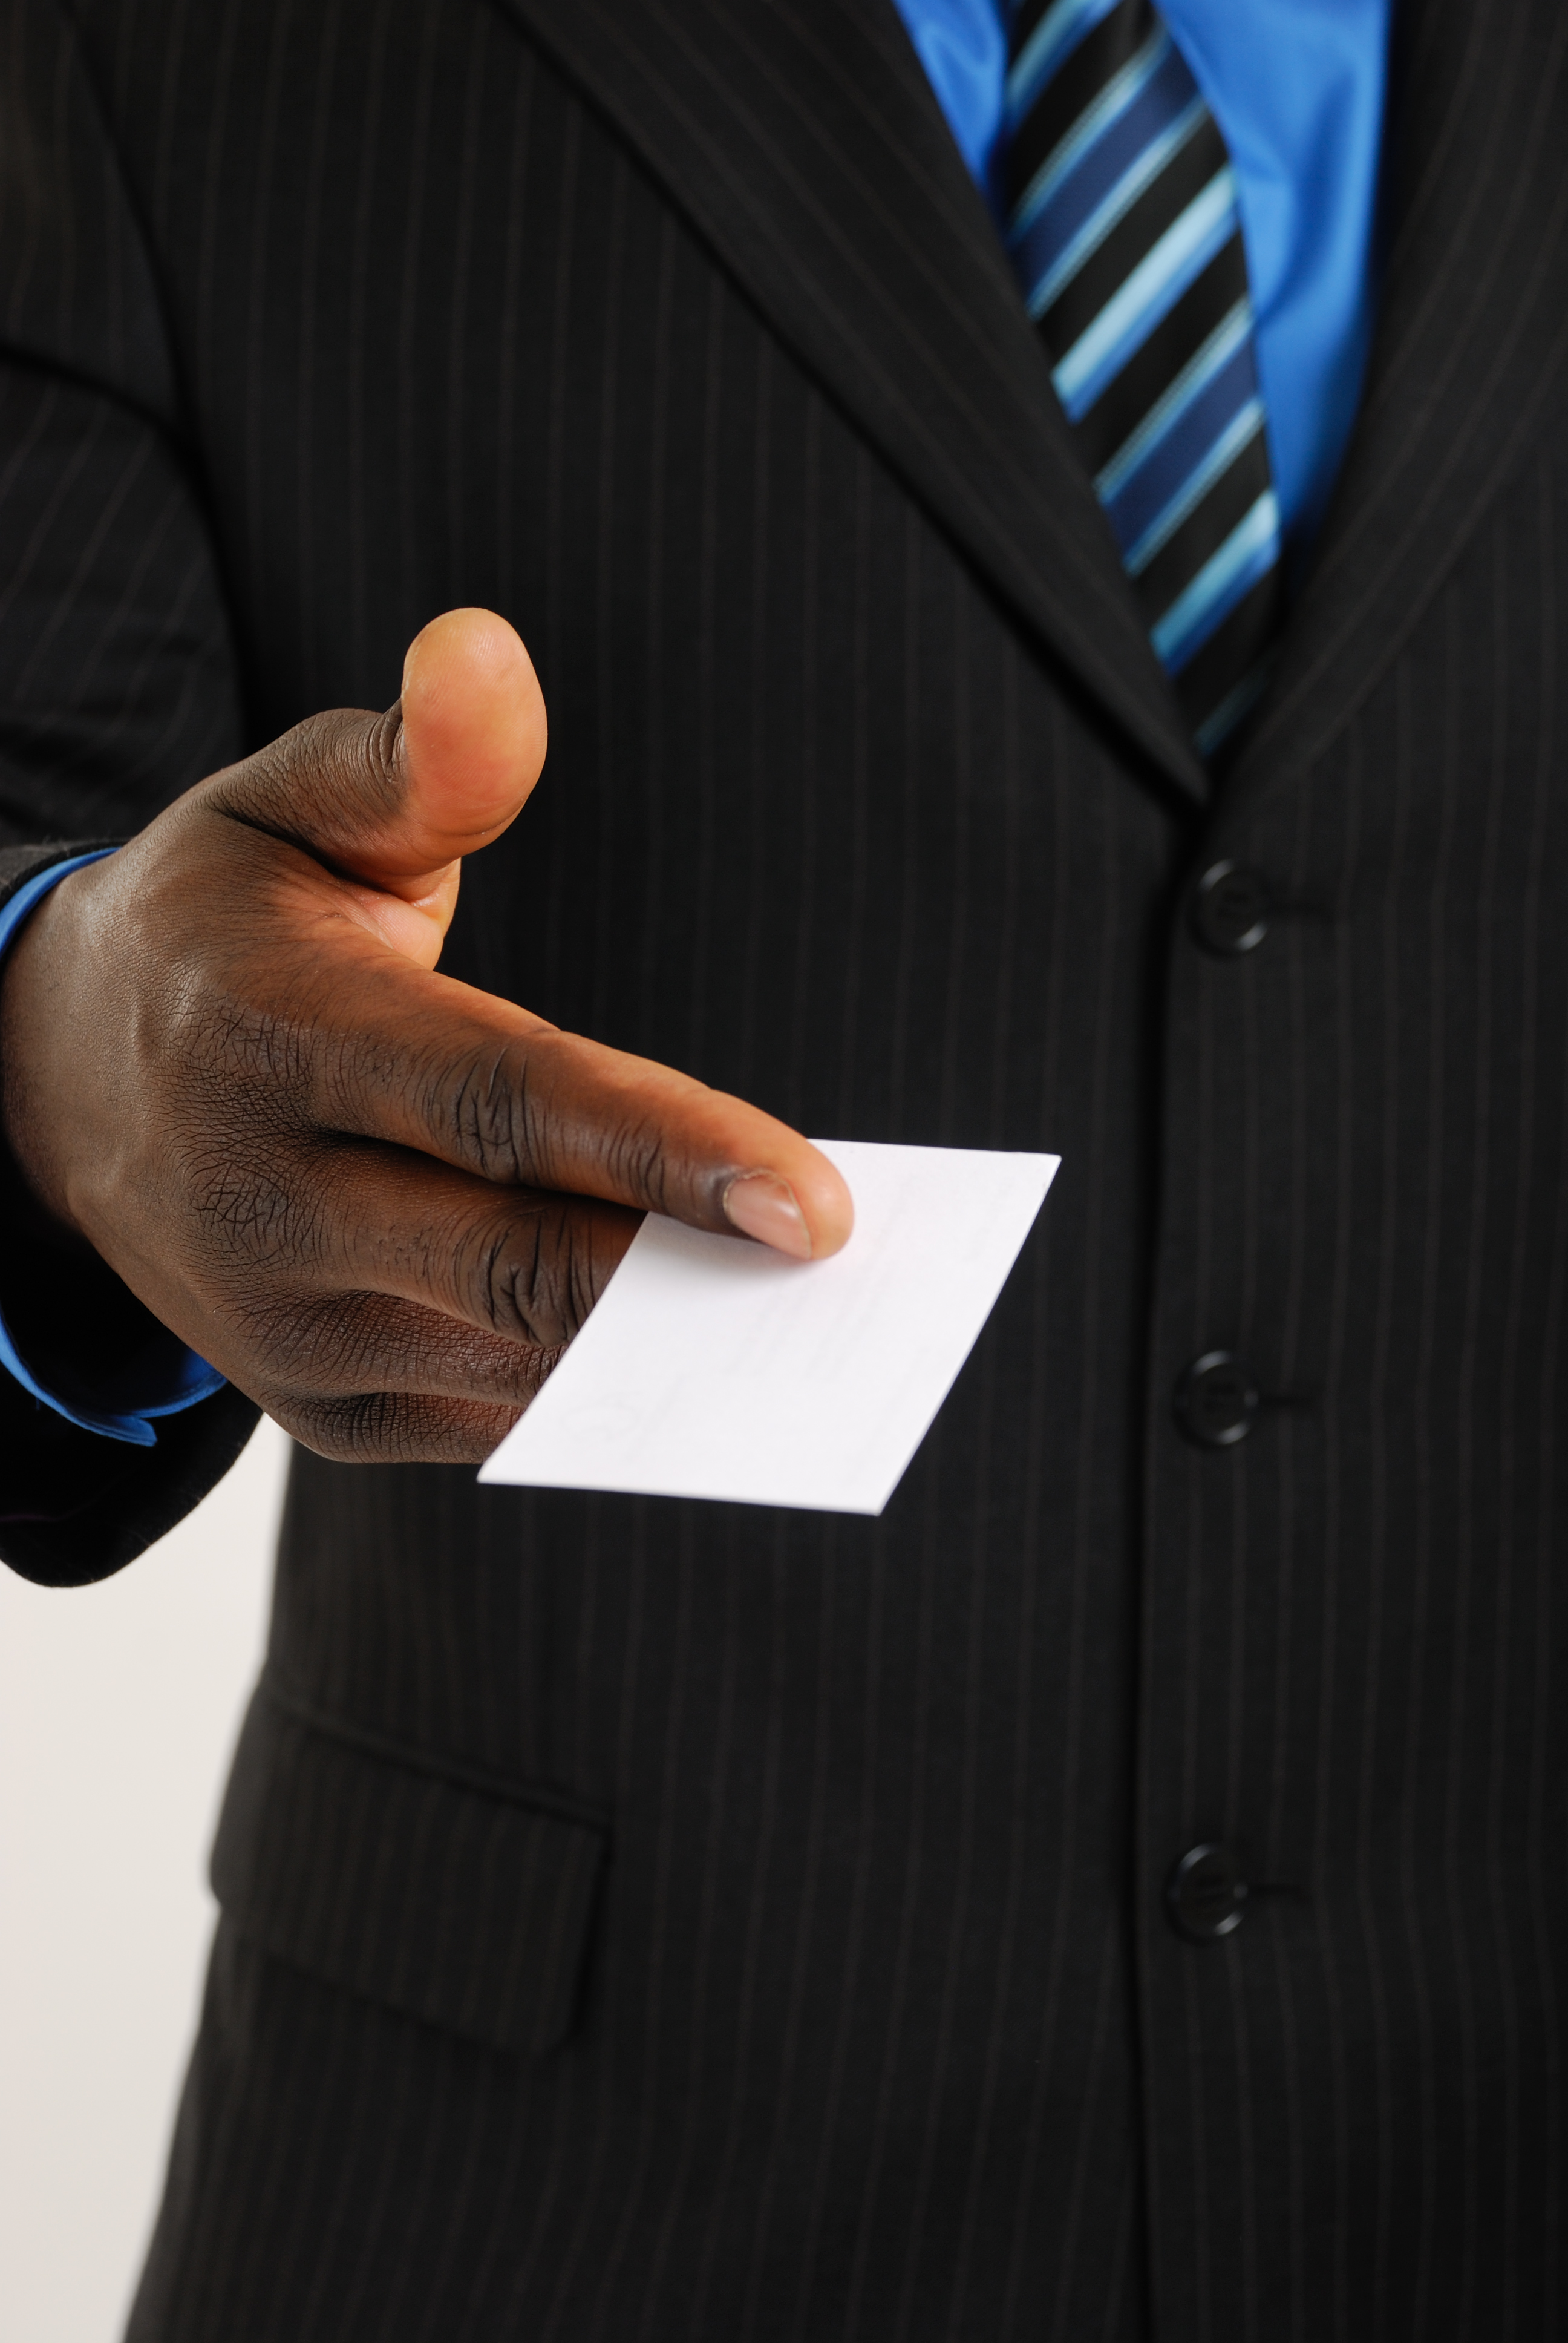 3 Things To Do at Your Next Networking Event | Signs Signs Signs, Inc.